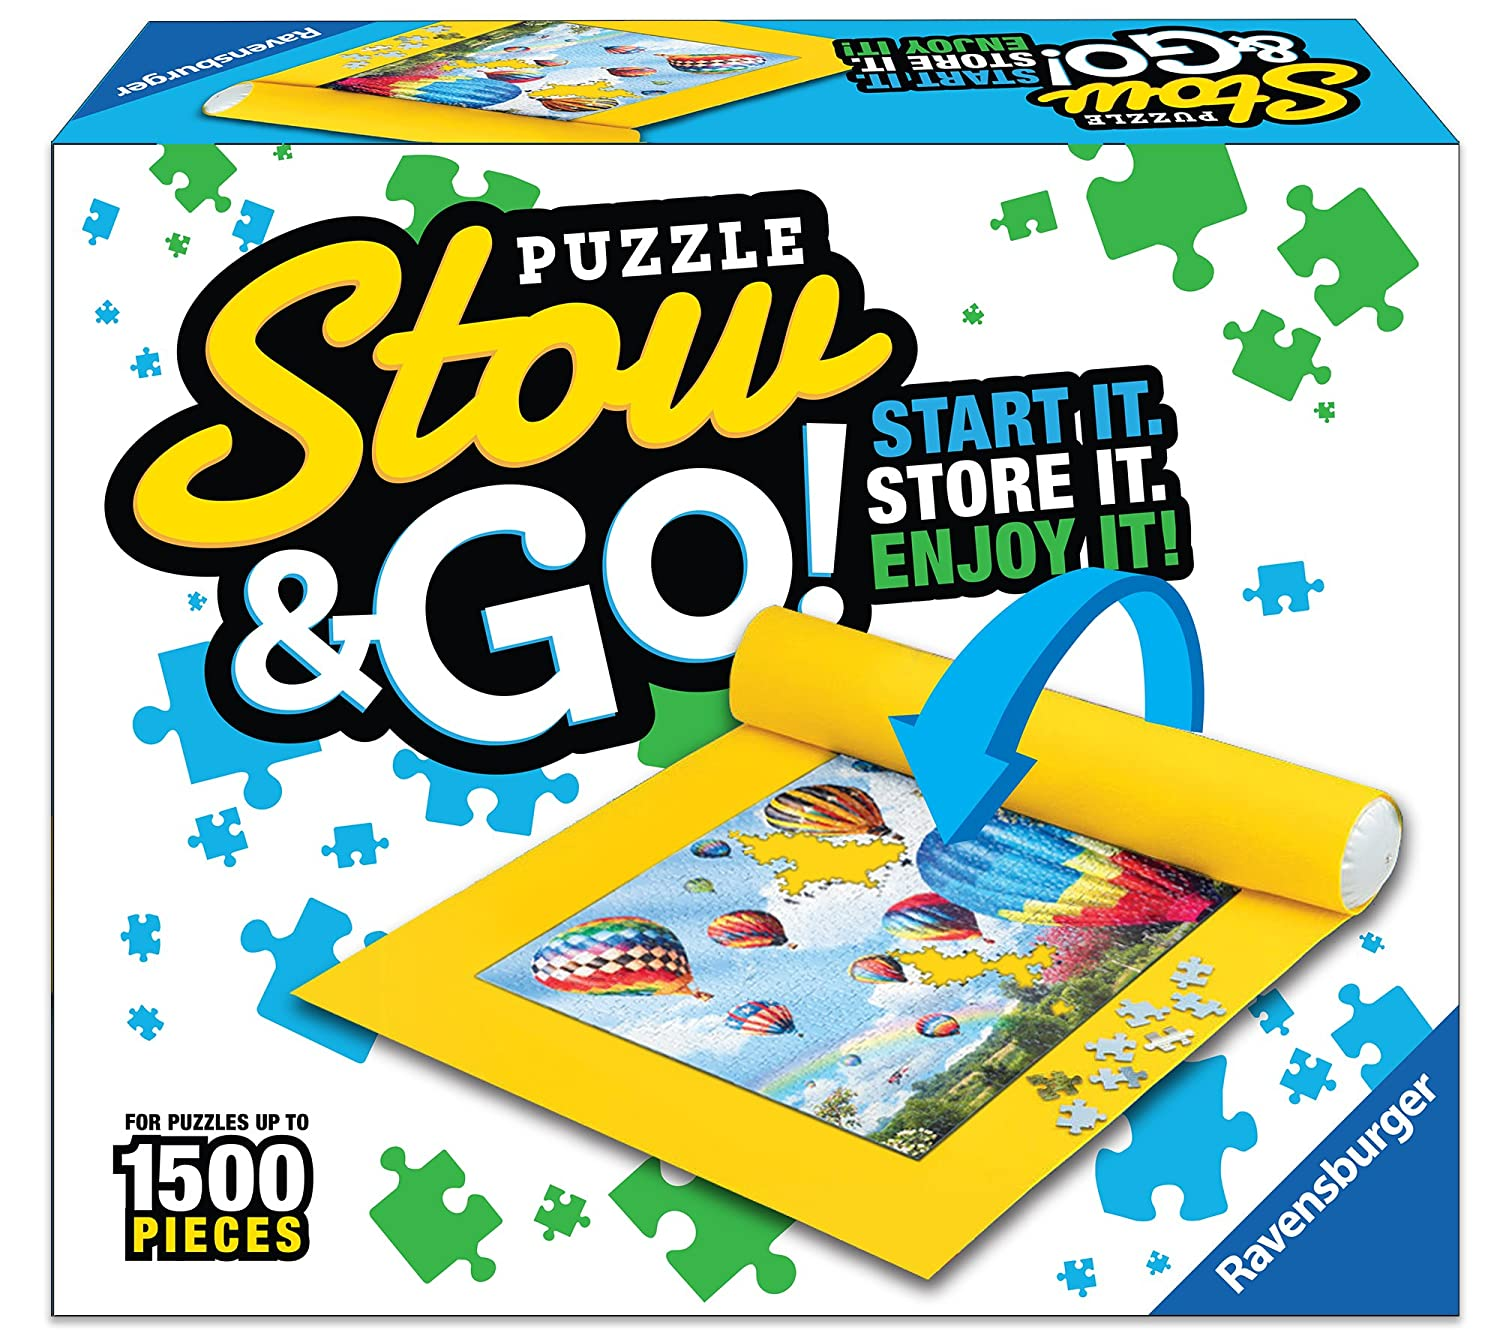 amazon com ravensburger 17960 puzzle stow and go 1500 pieces 46 x